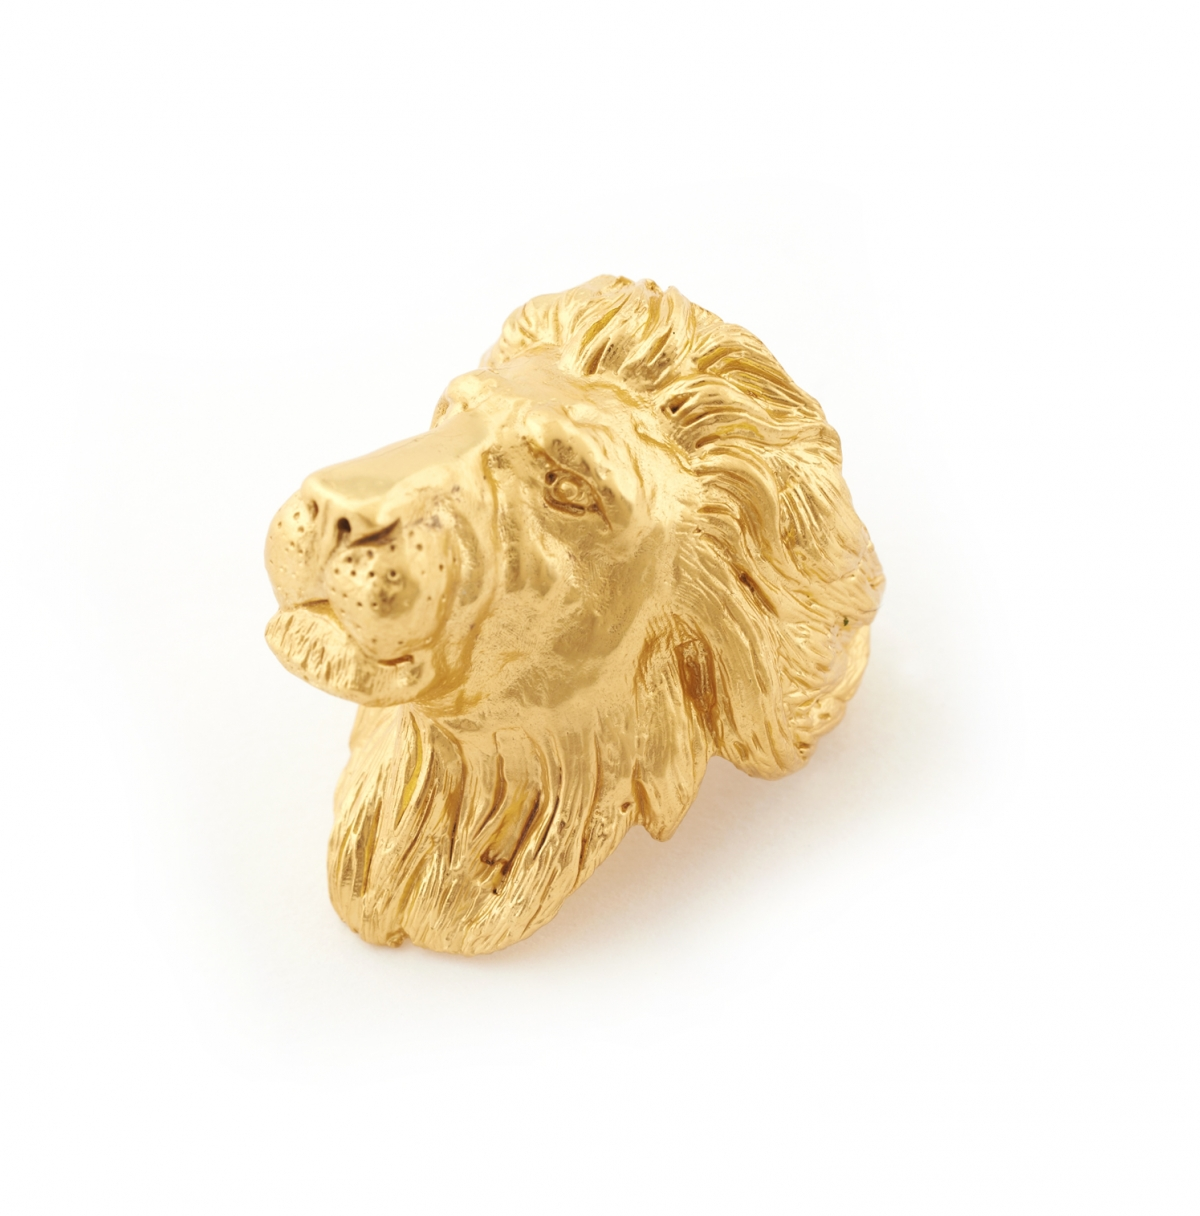 ONLINE EXCLUSIVE Maxi Lion Head Ring -Medium Size Only